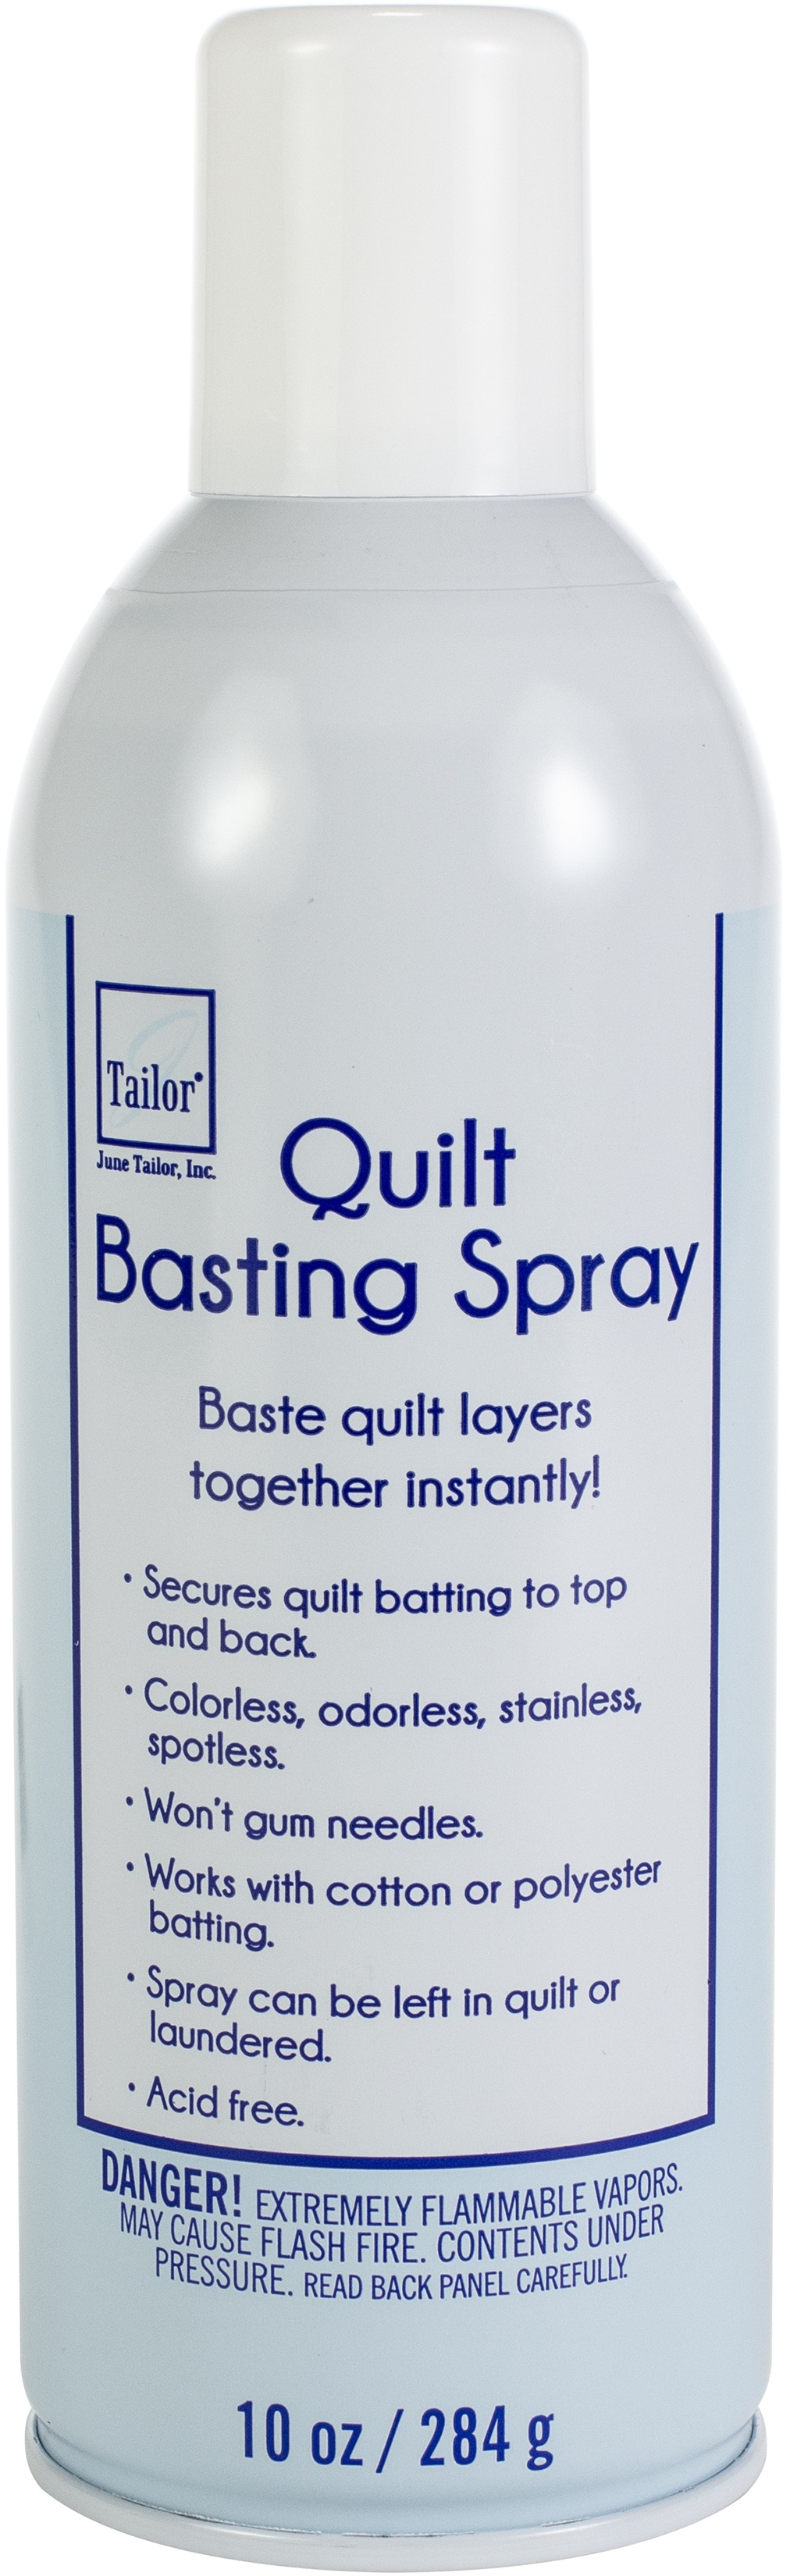 Basting Spray